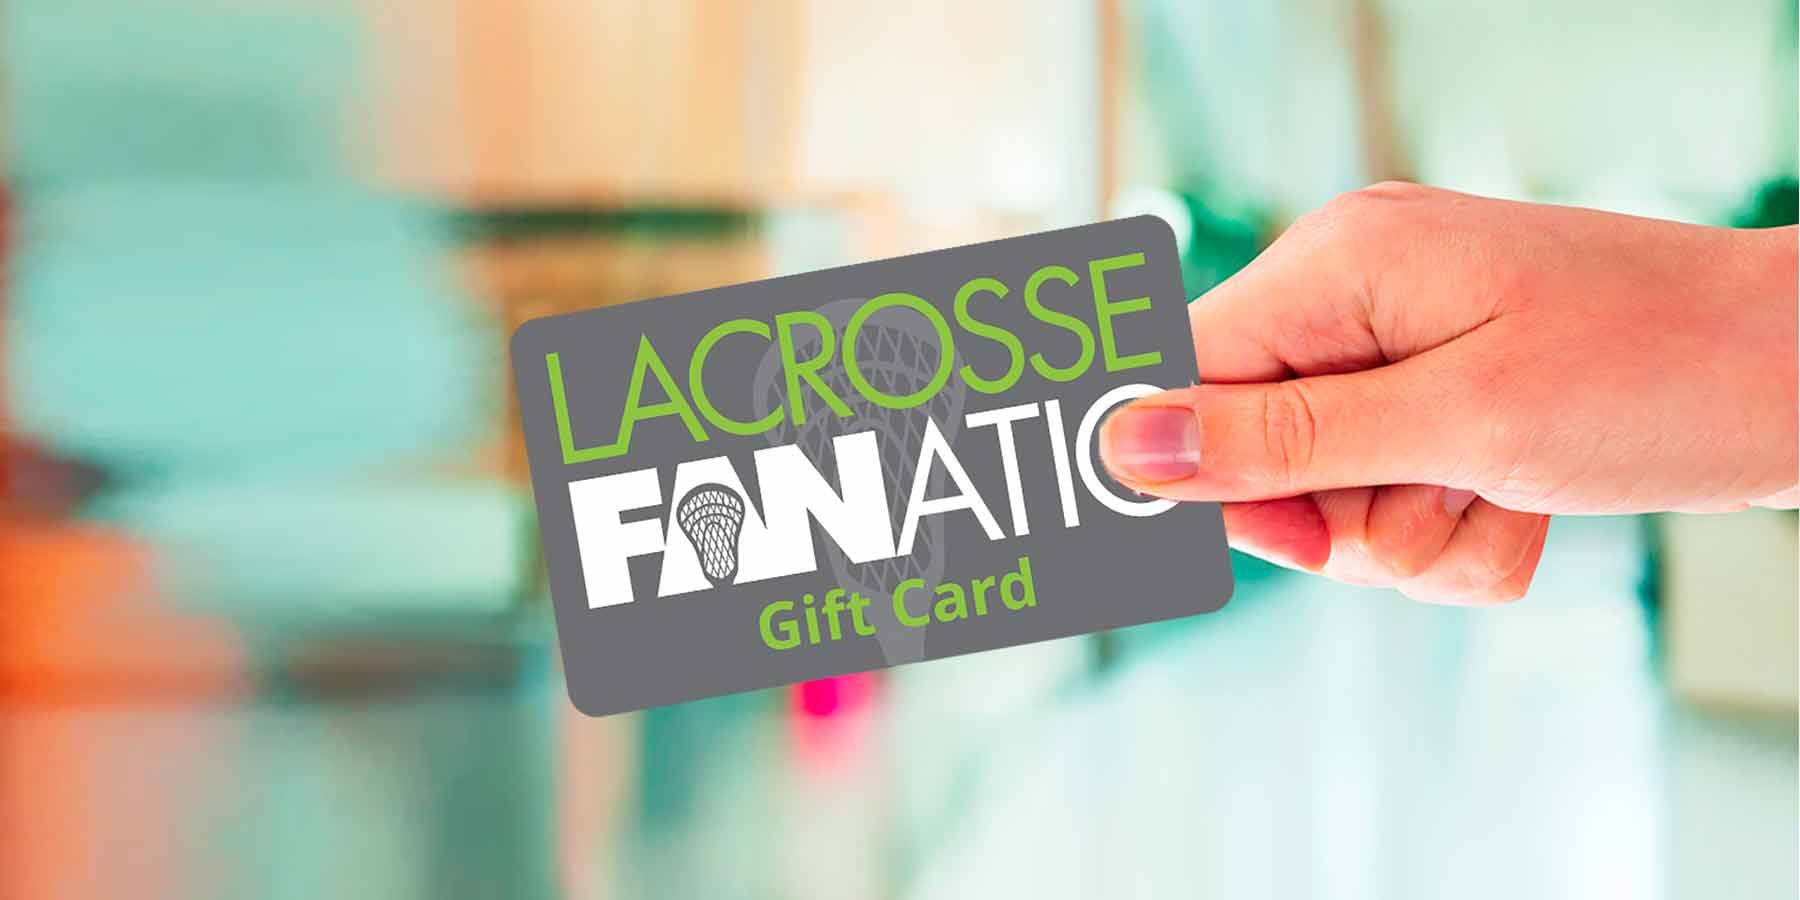 Free Lax Fan Gift Cards with purchase of select items.